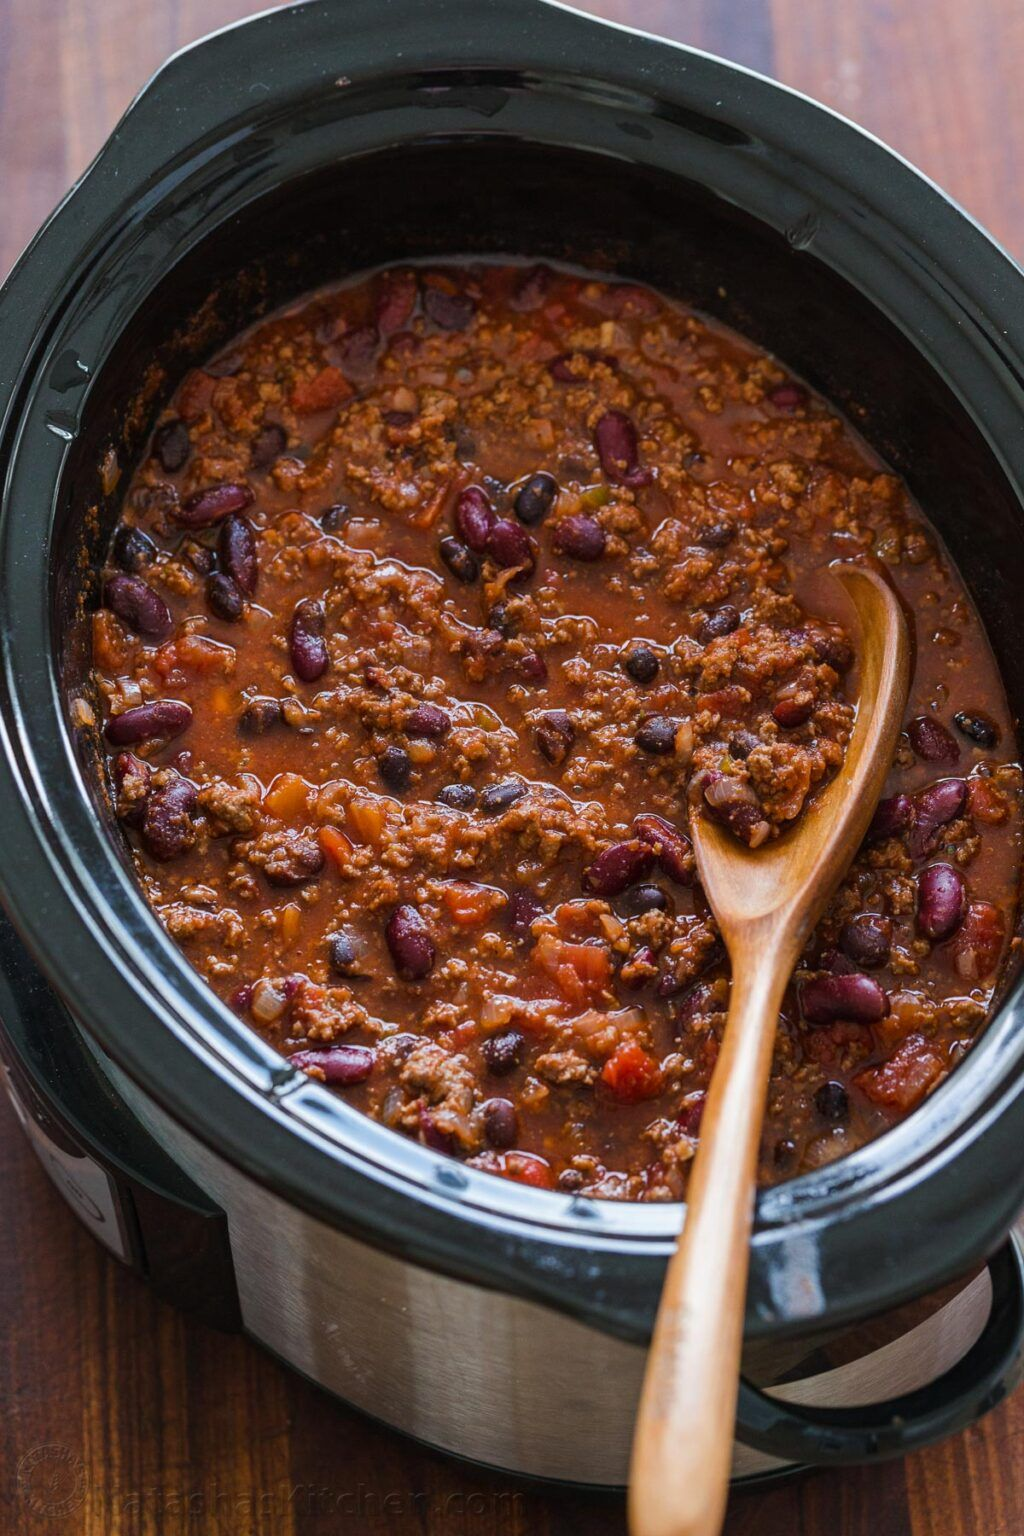 An Easy Crockpot Chili Recipe With Ground Beef Beans Tomato Sauce And The Best Homemade Ch In 2020 Slow Cooker Chili Recipe Slow Cooker Chili Easy Slow Cooker Chili